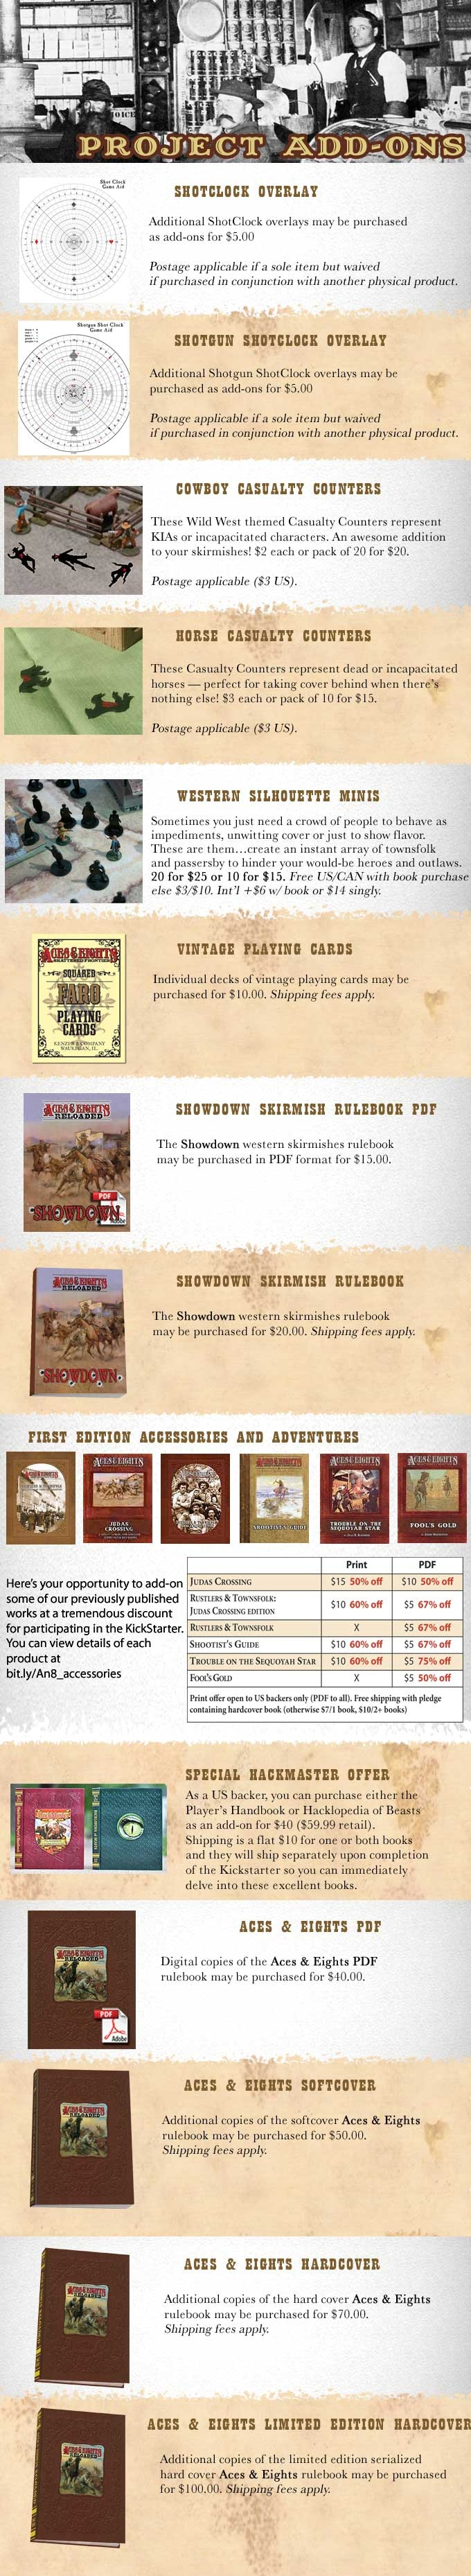 Aces & Eights: Reloaded, a Wild West role playing game by